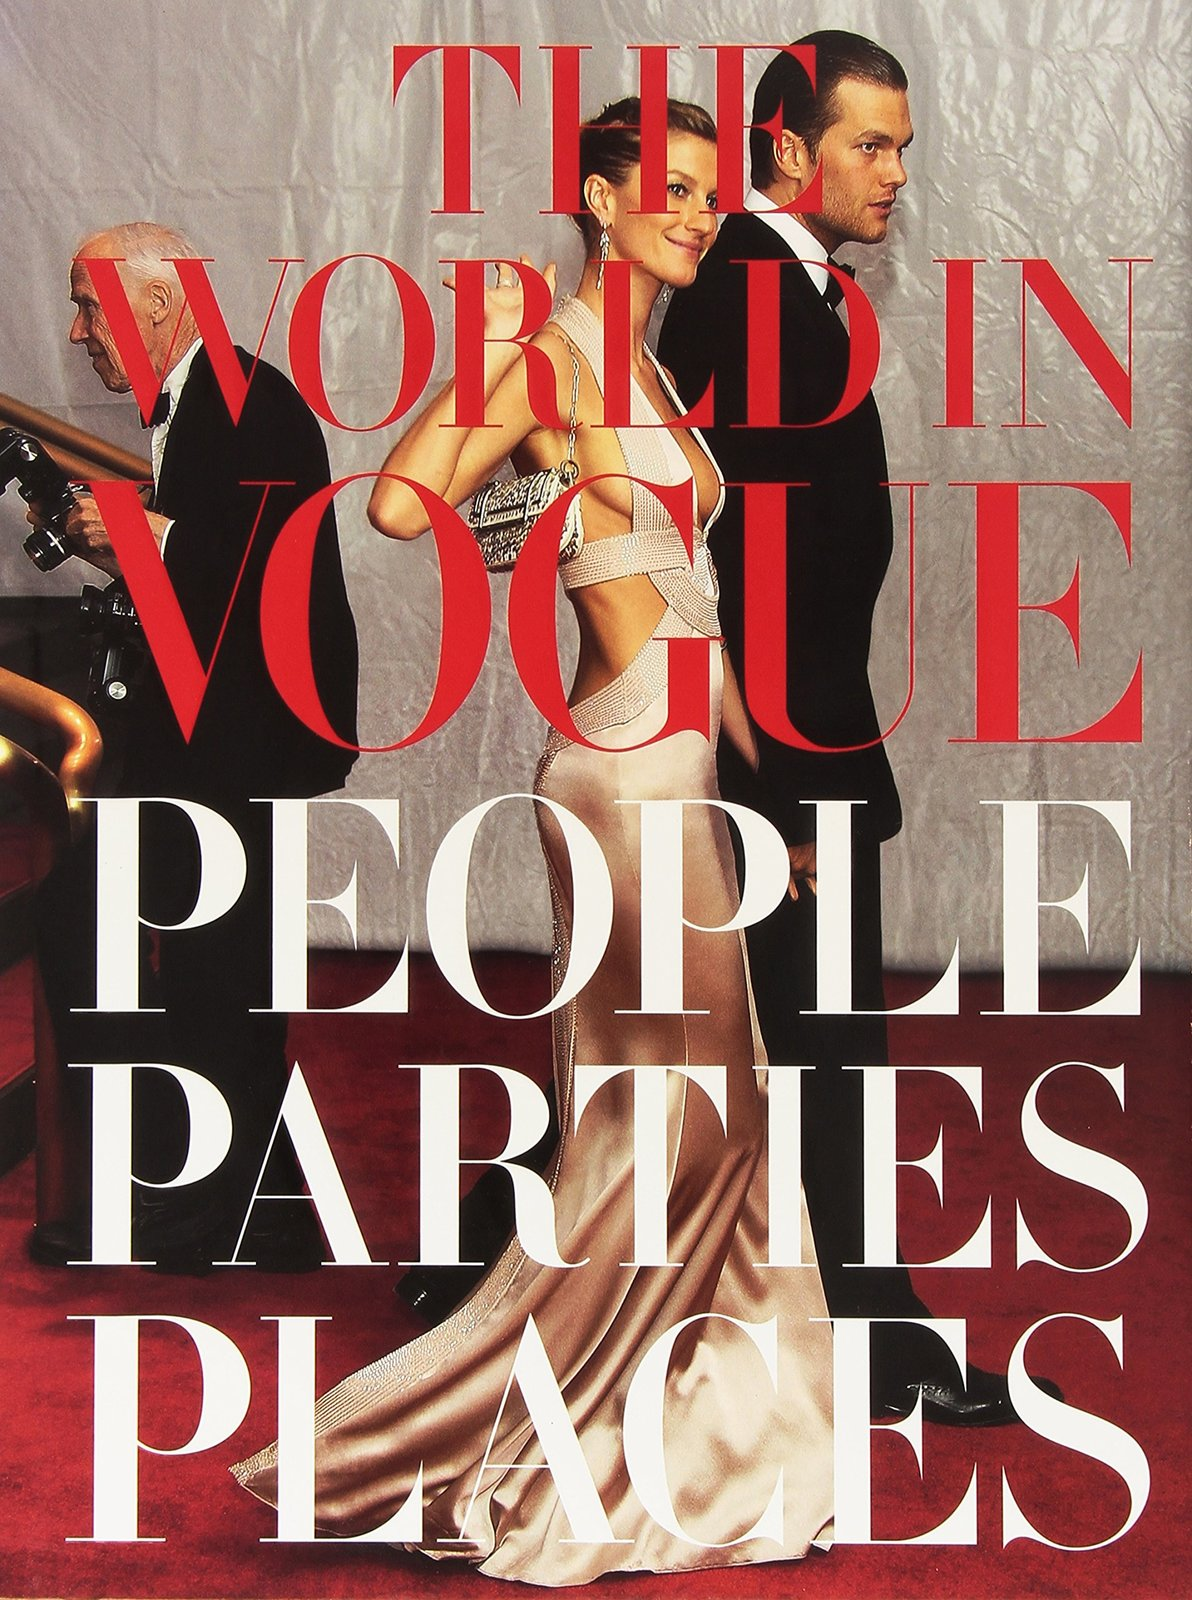 The World In Vogue by Hamish Bowles image